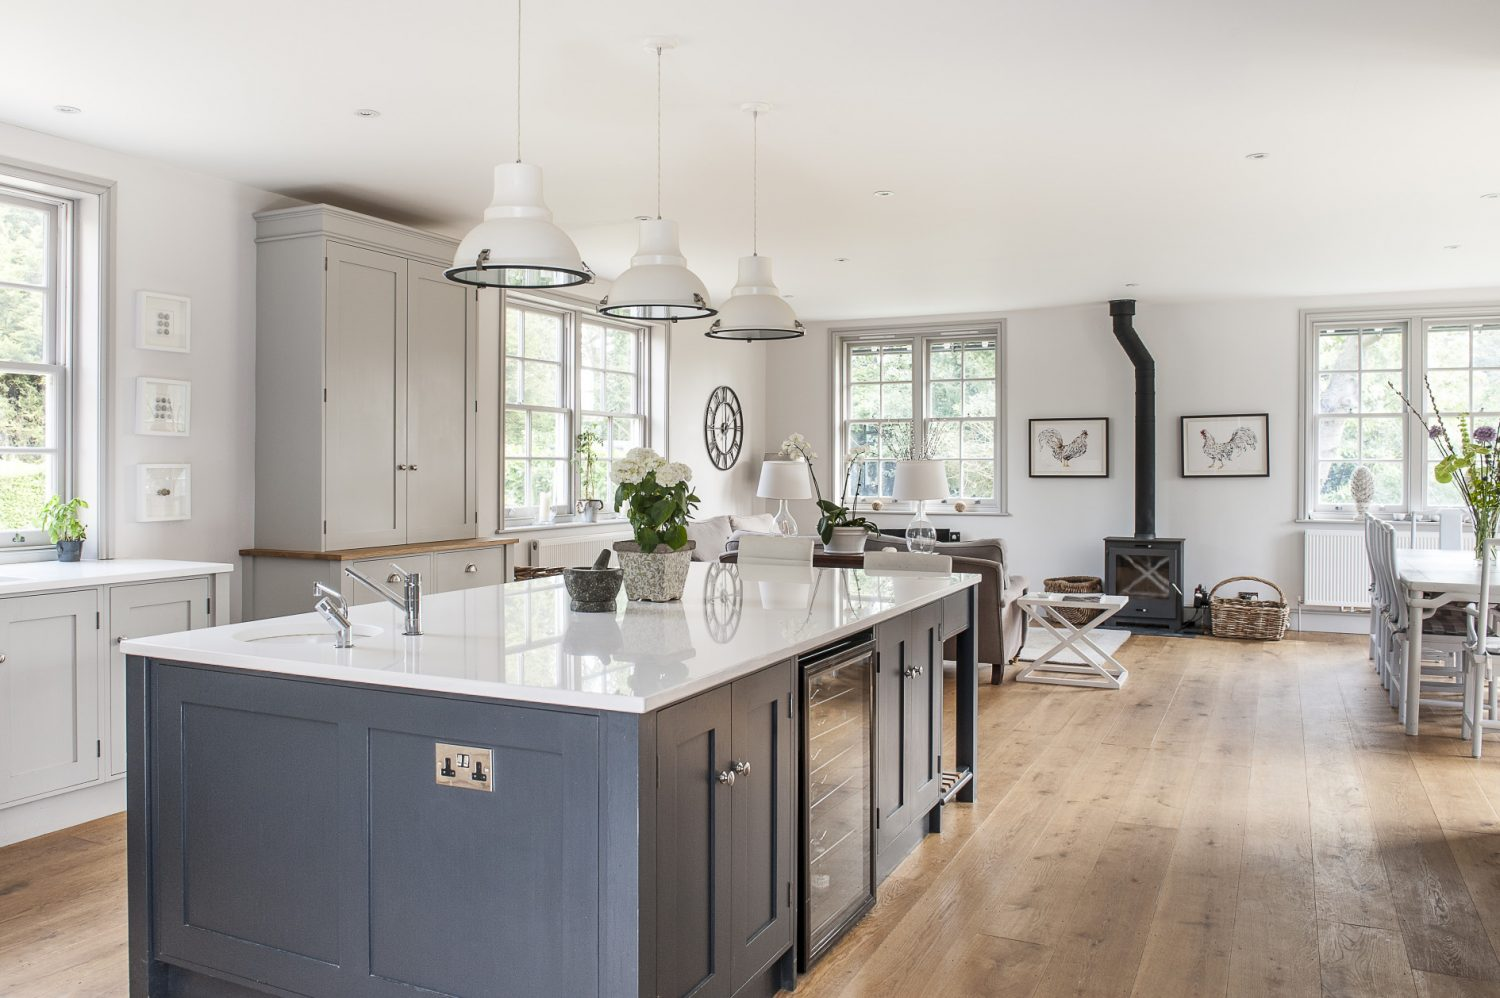 The large, open plan kitchen is now one of the most important rooms in the house and where the family spends most of their time